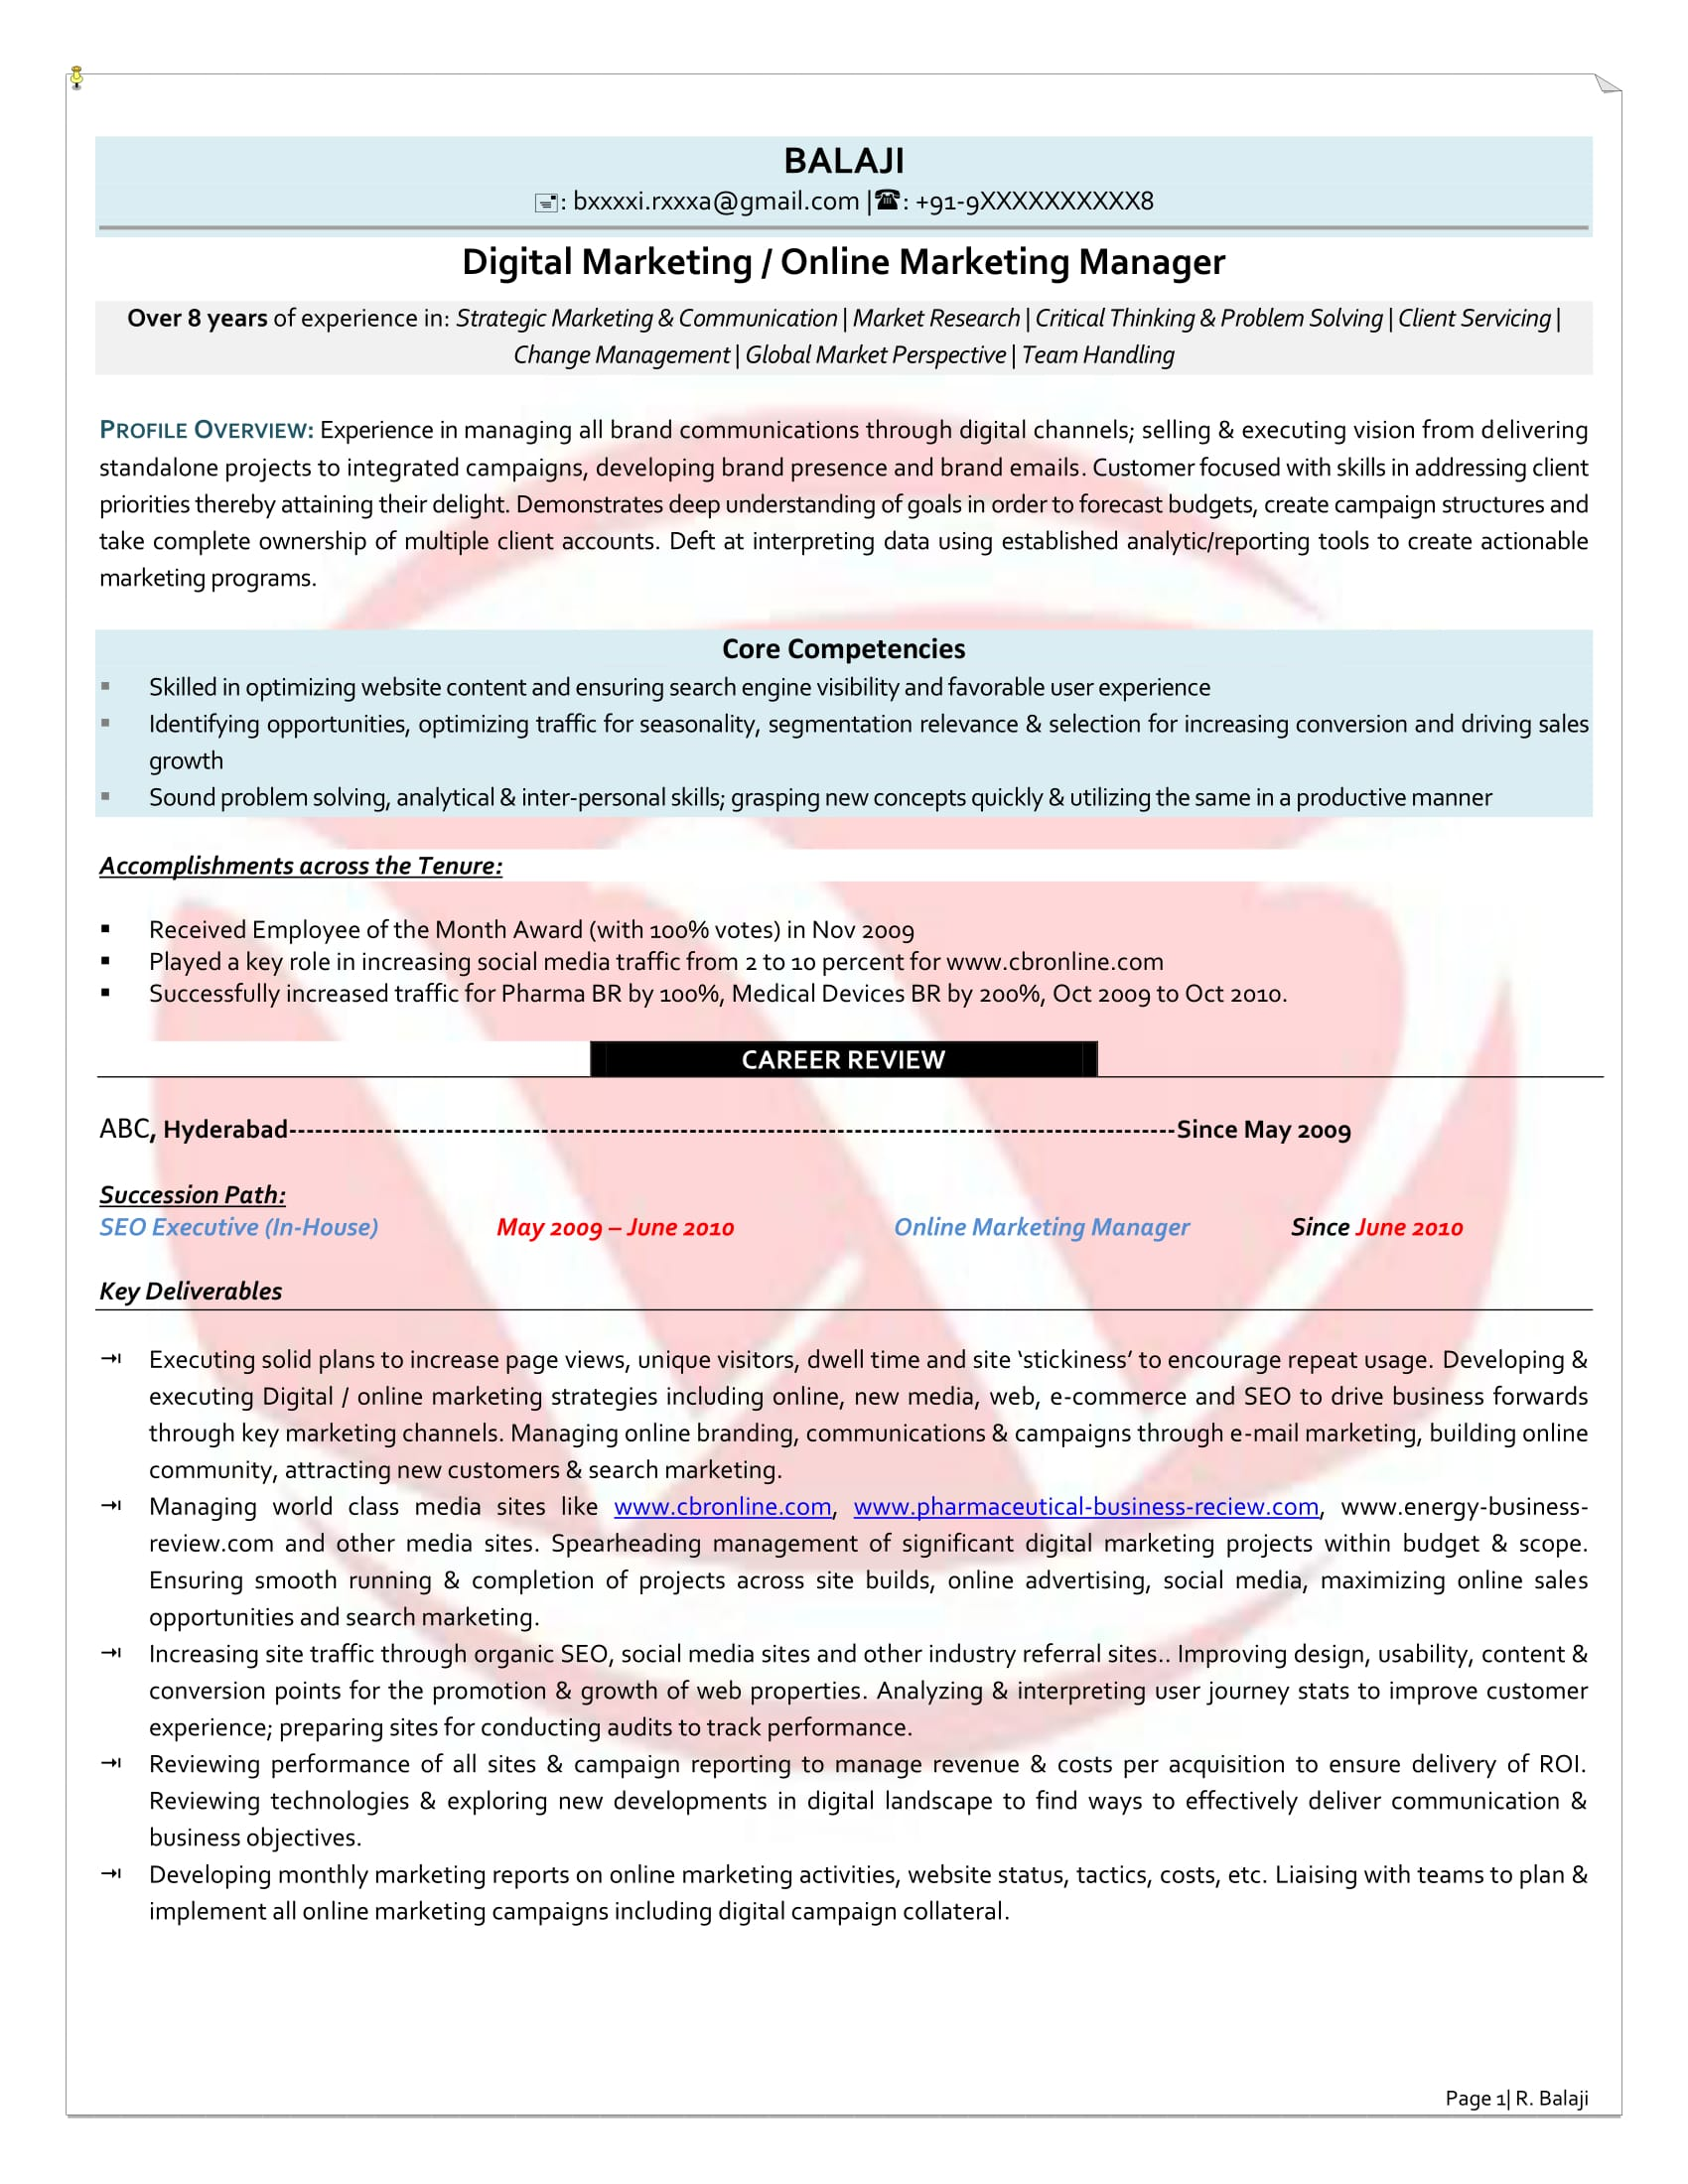 Digital Marketing Sample Resume  Digital Marketing Resume Sample